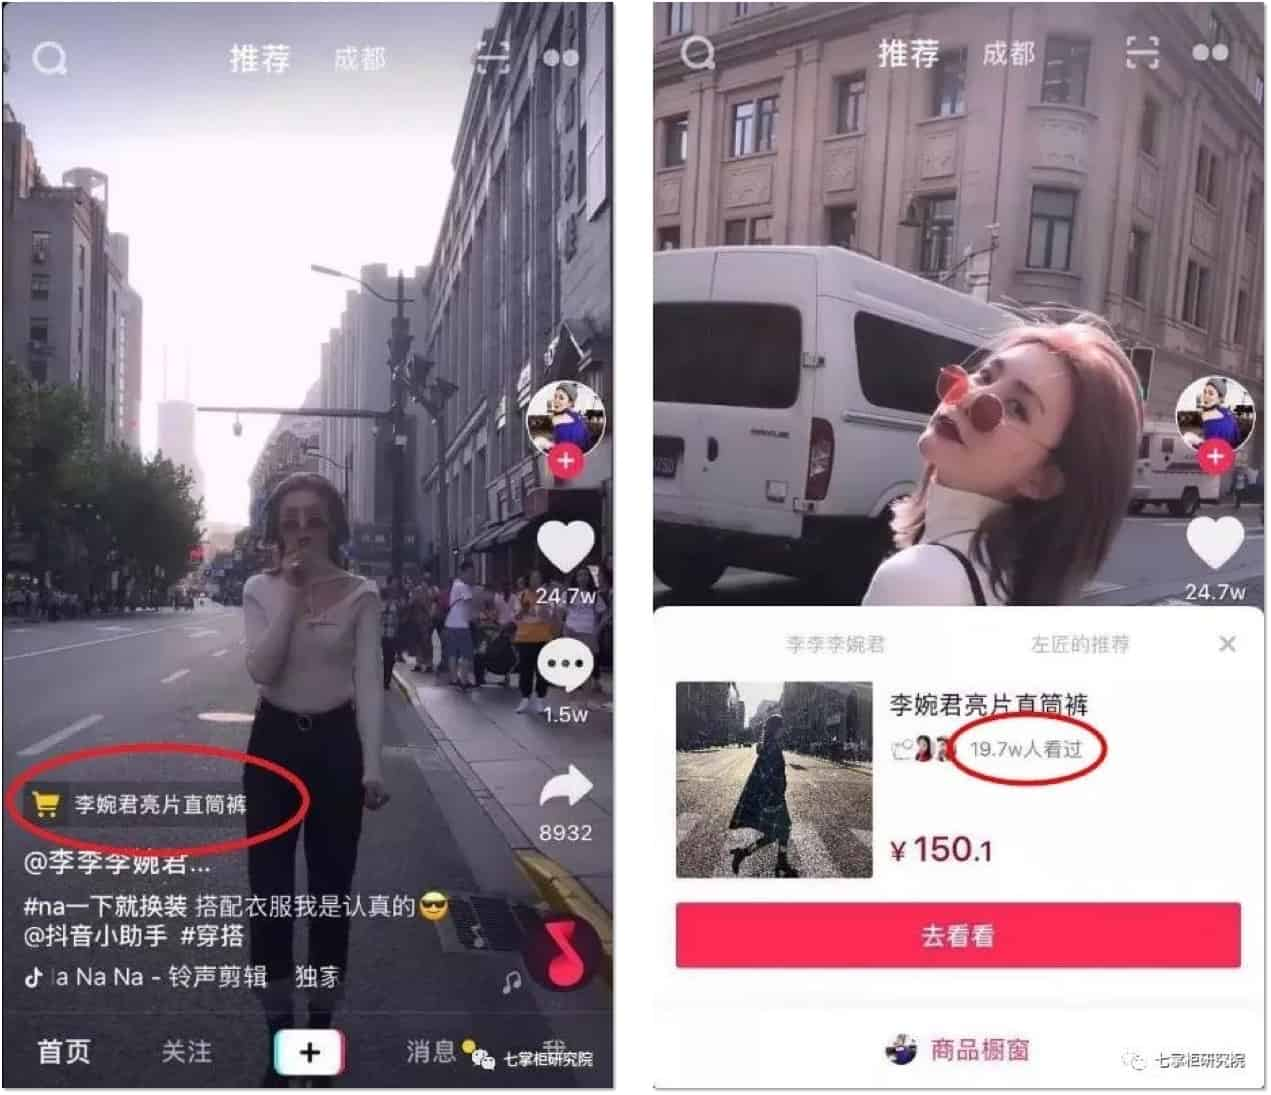 Tik Tok: A Look at China's #1 Up And Coming Social Media